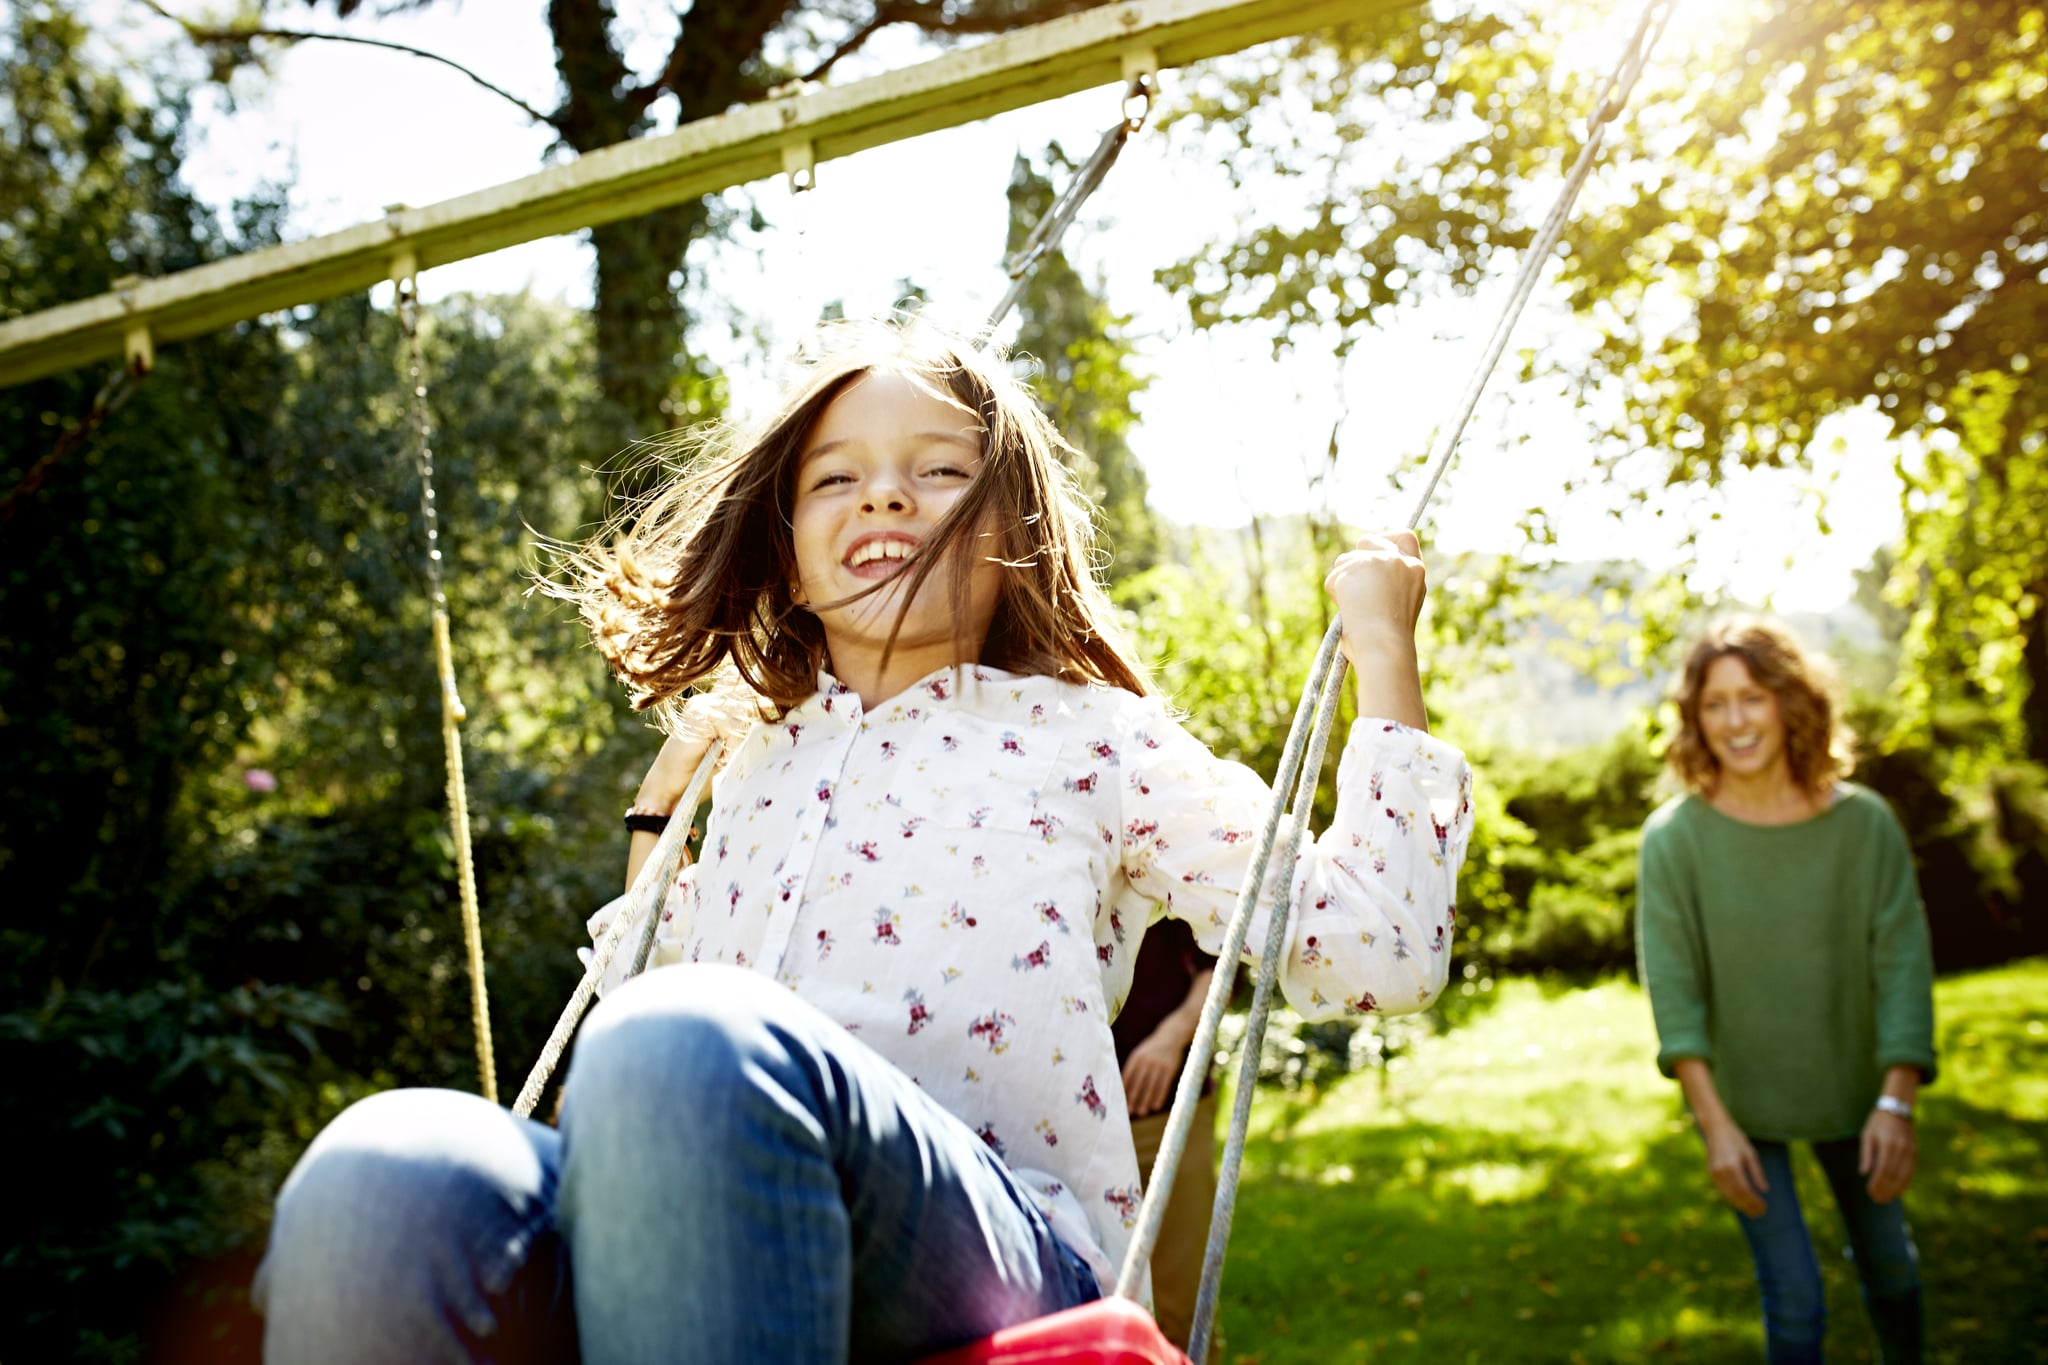 Cheerful mother pushing daughter on swing in sunny park